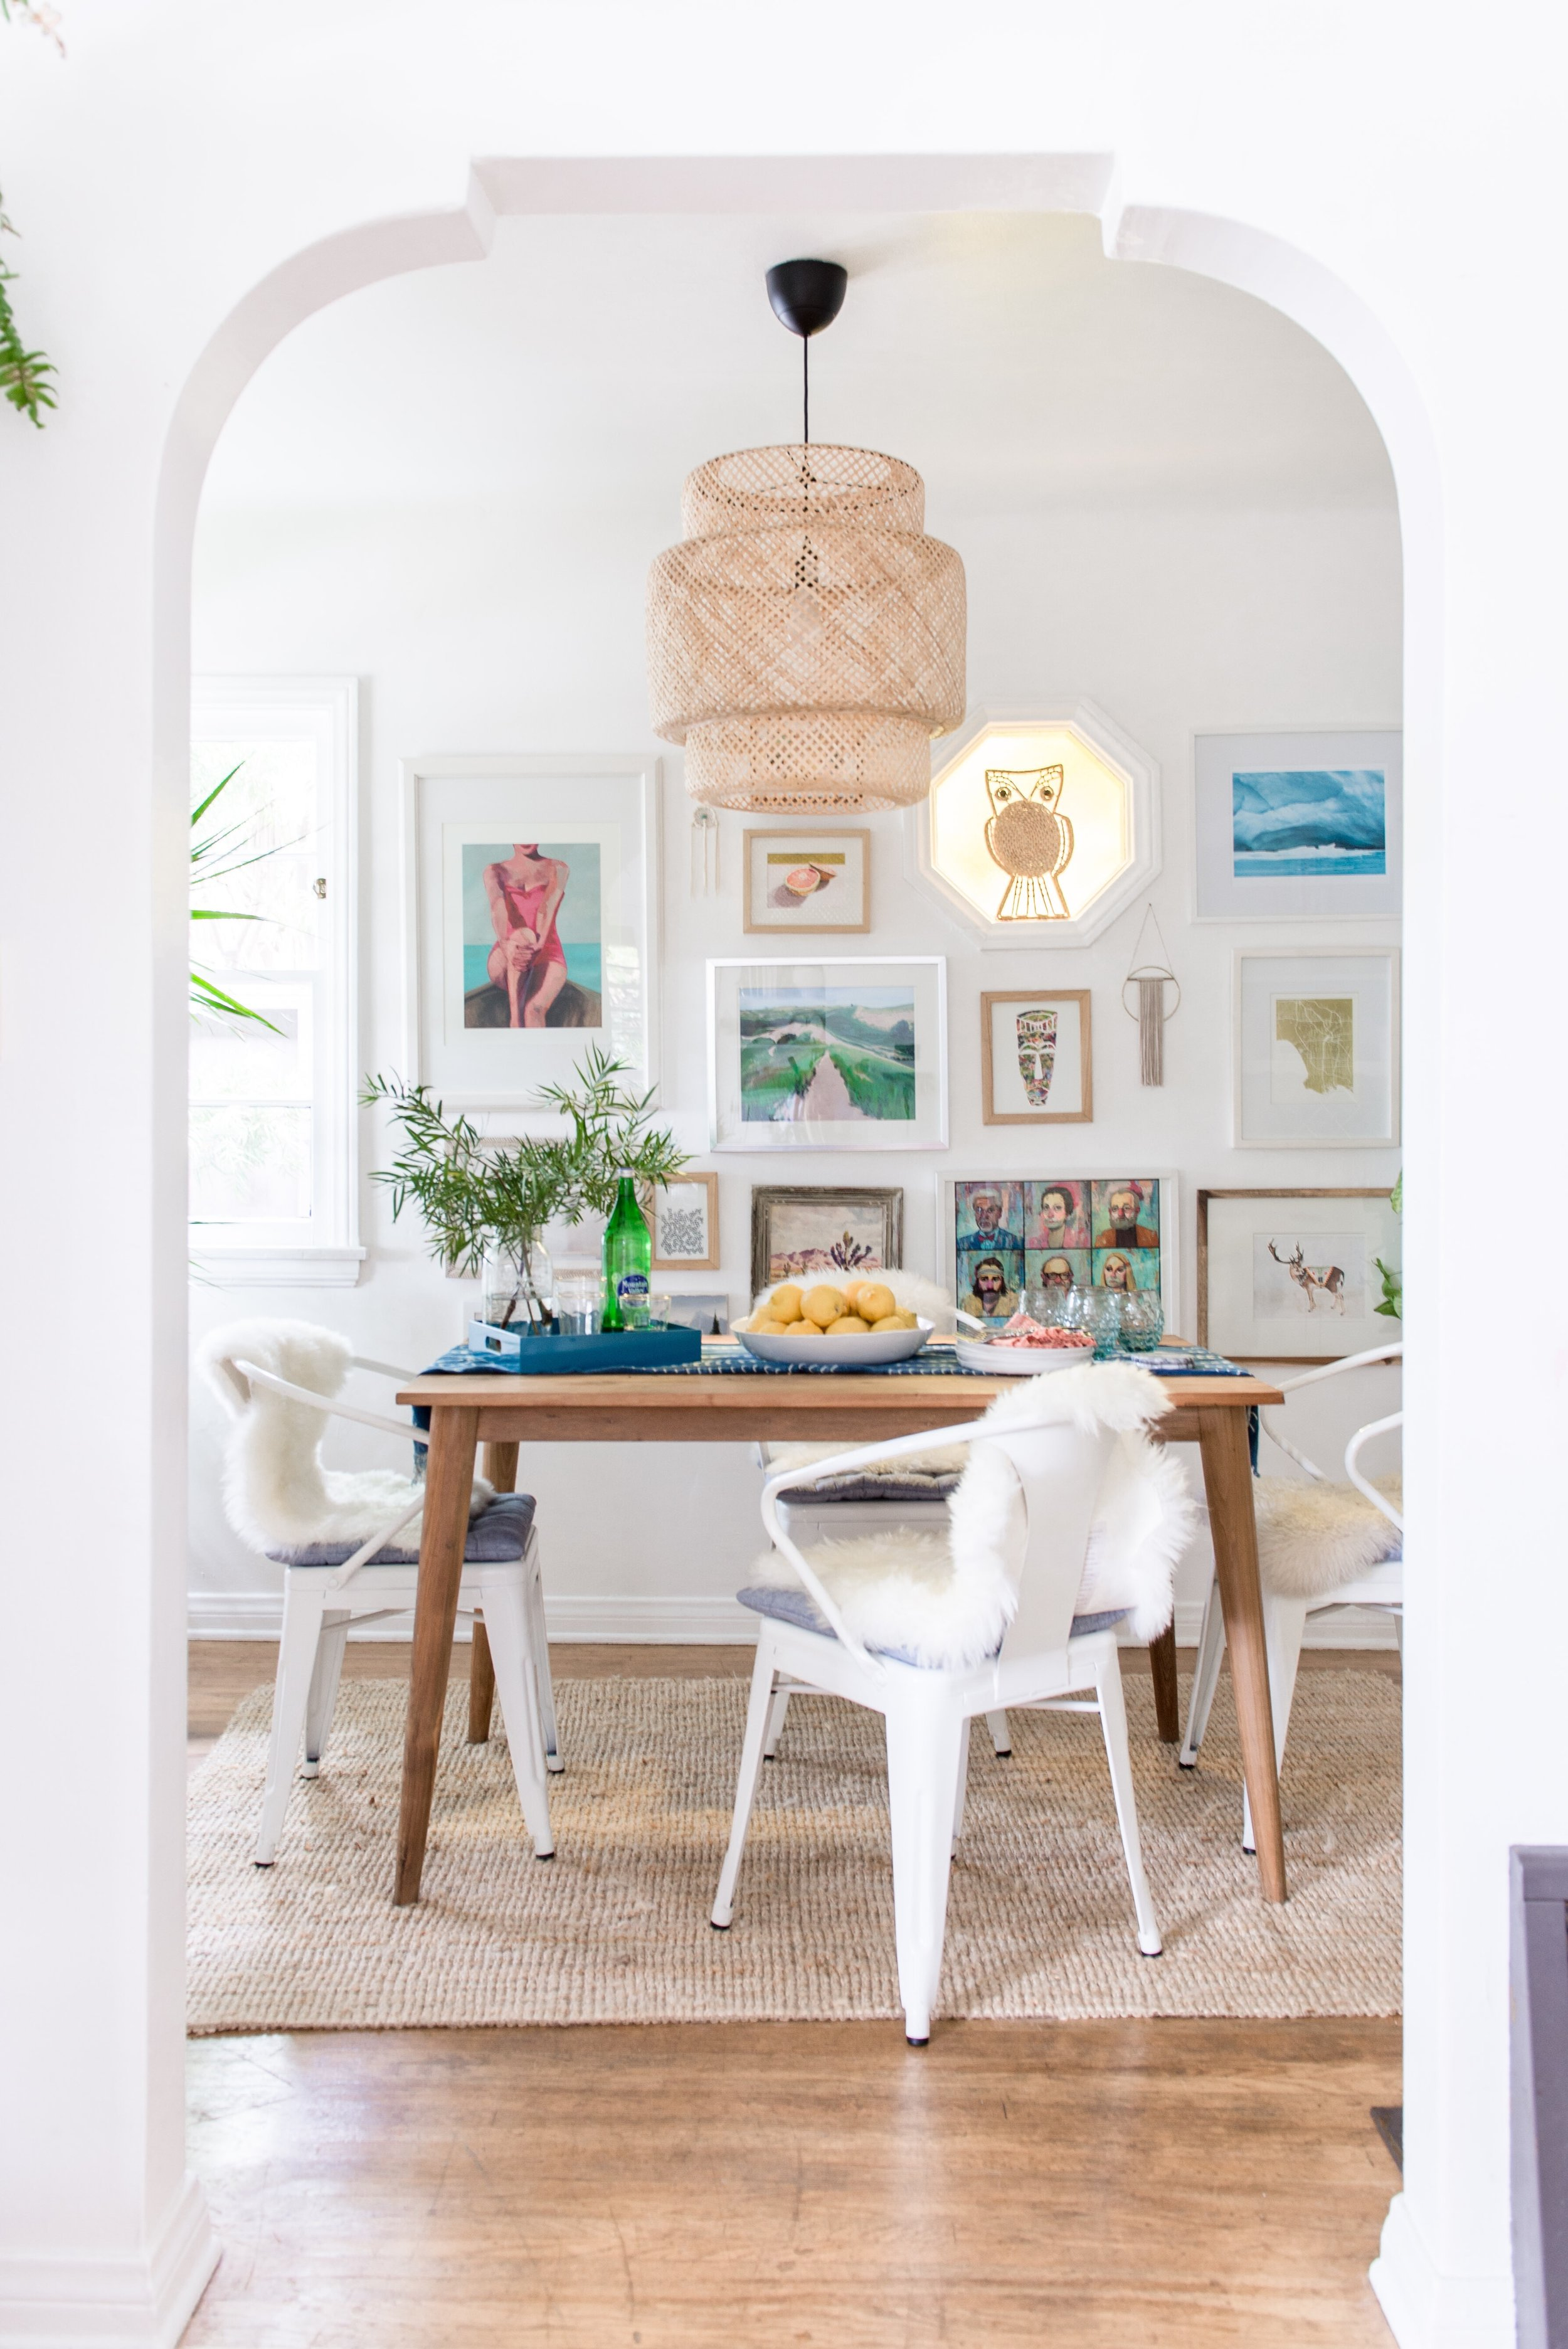 Dining room with table set, white chairs and a gallery wall.jpg